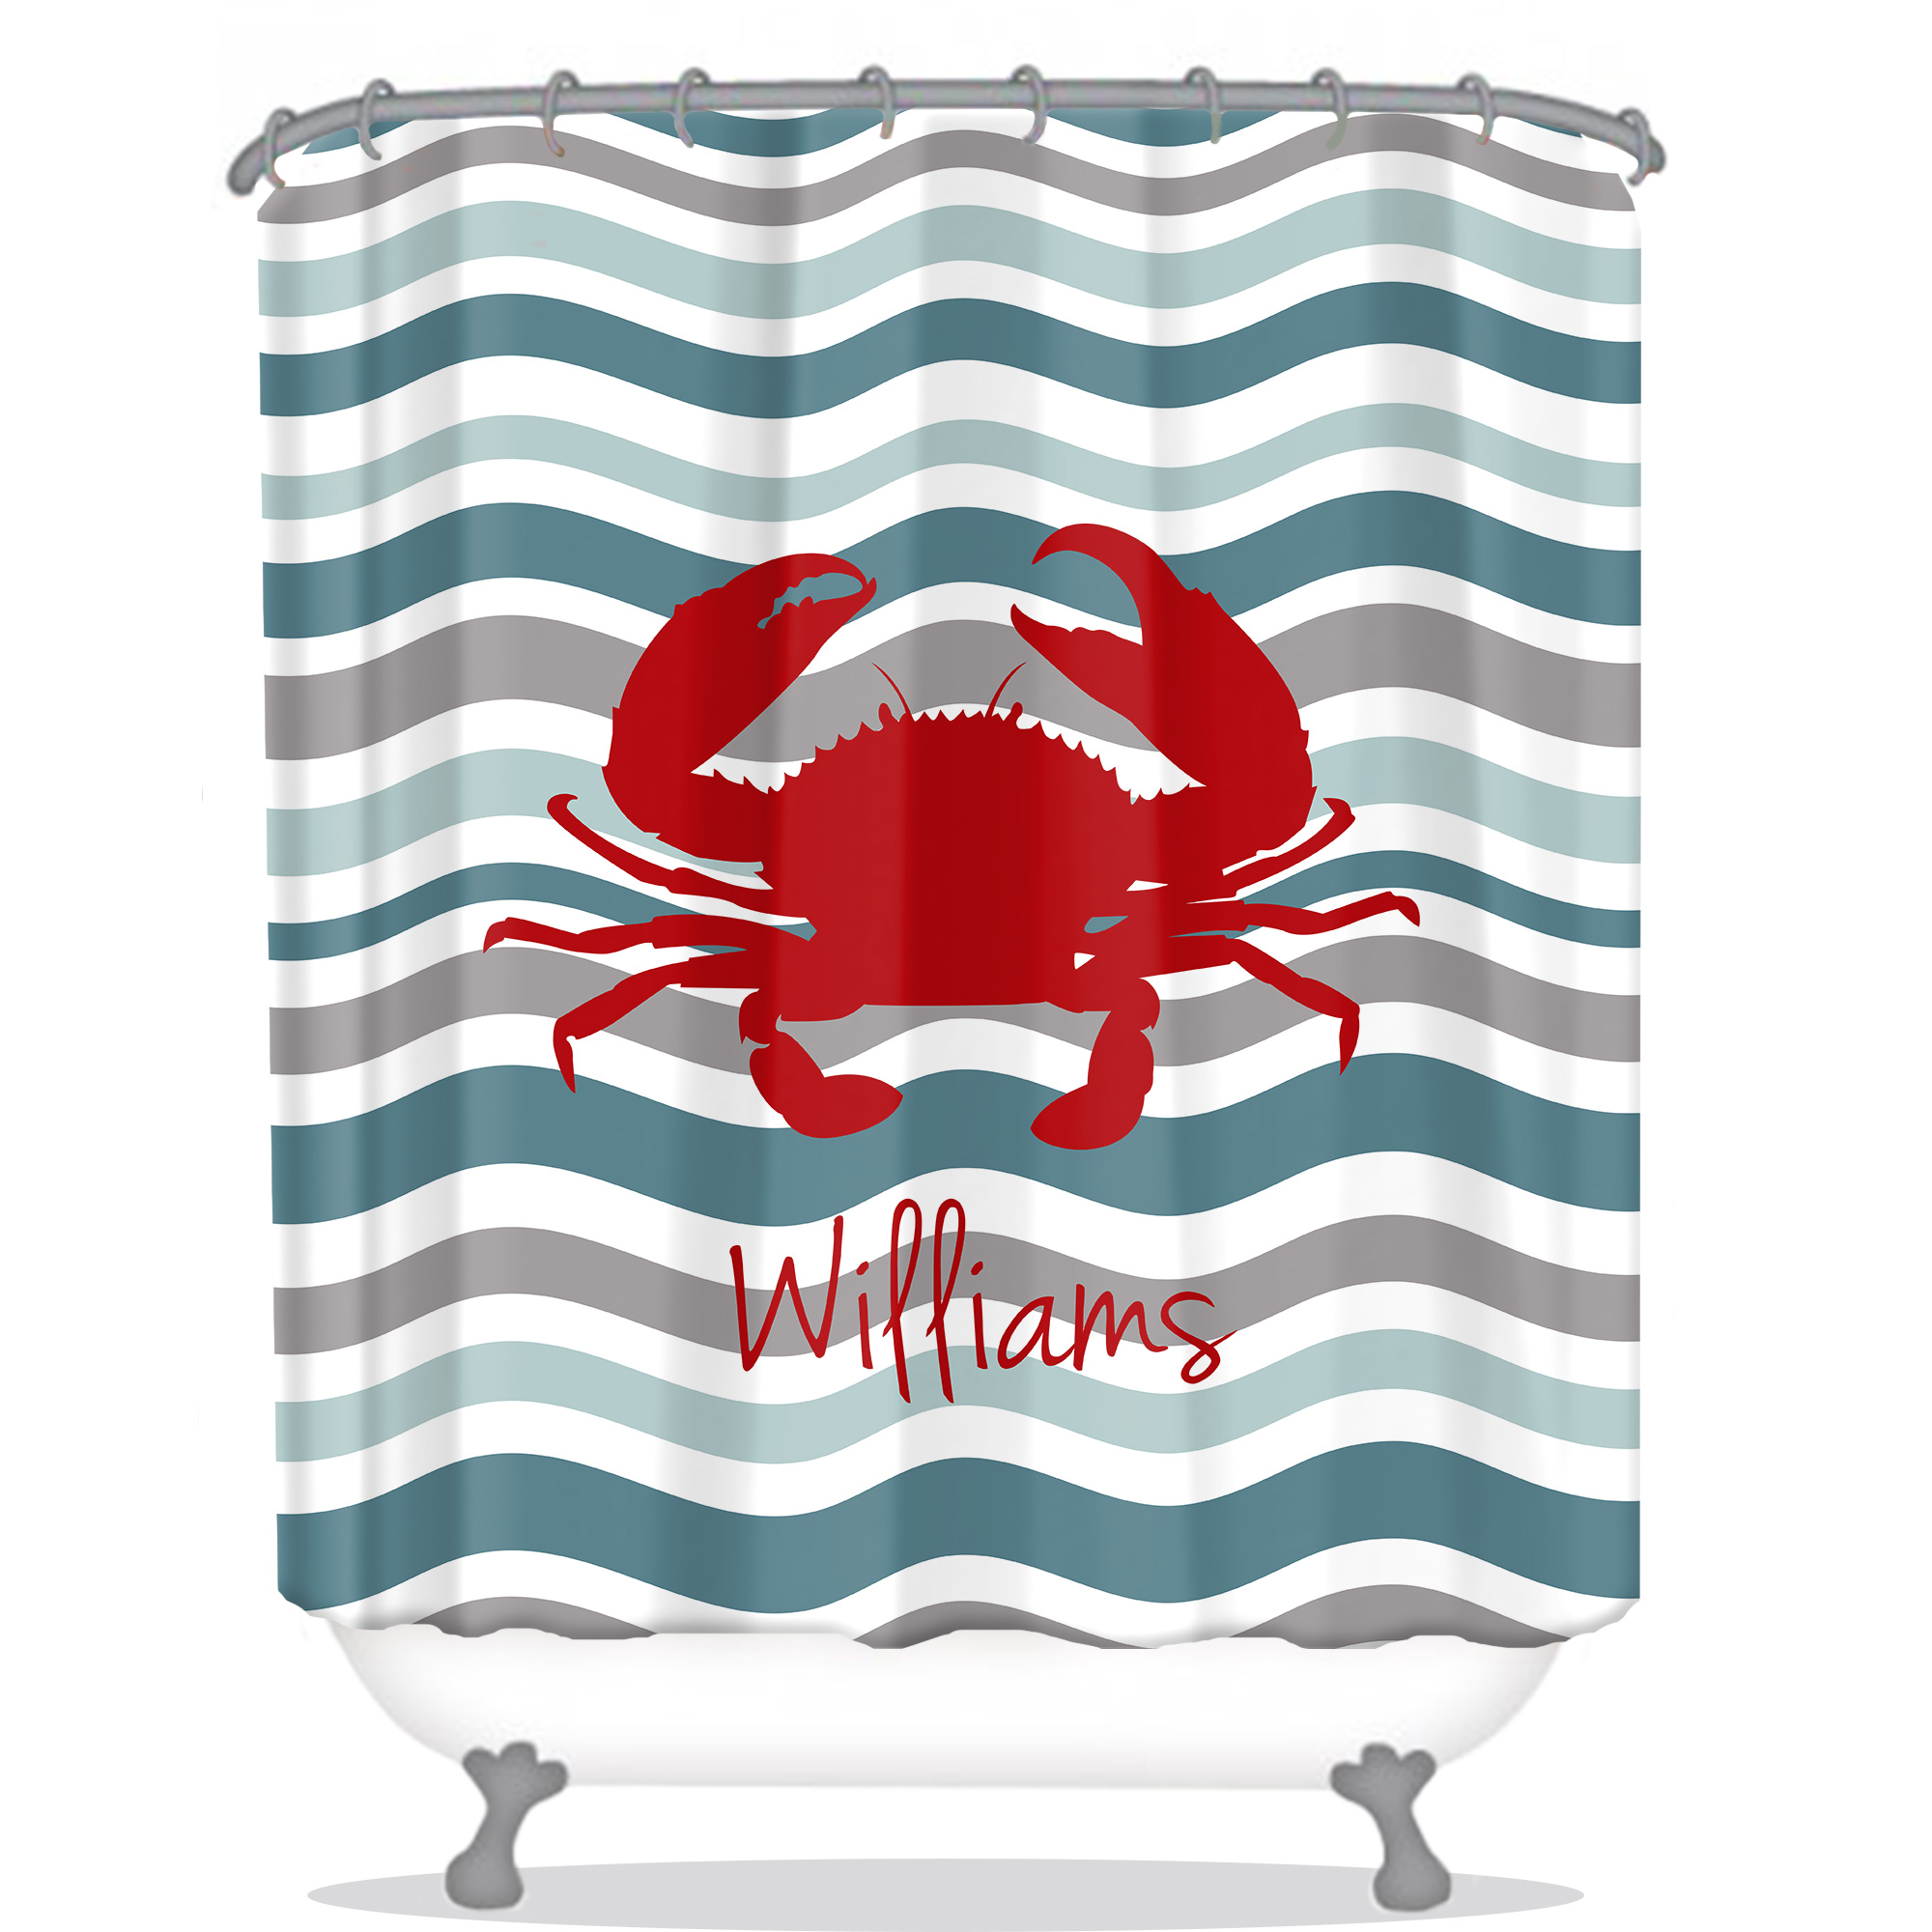 Delightful Waves Personalized Shower Curtain Matching Towel